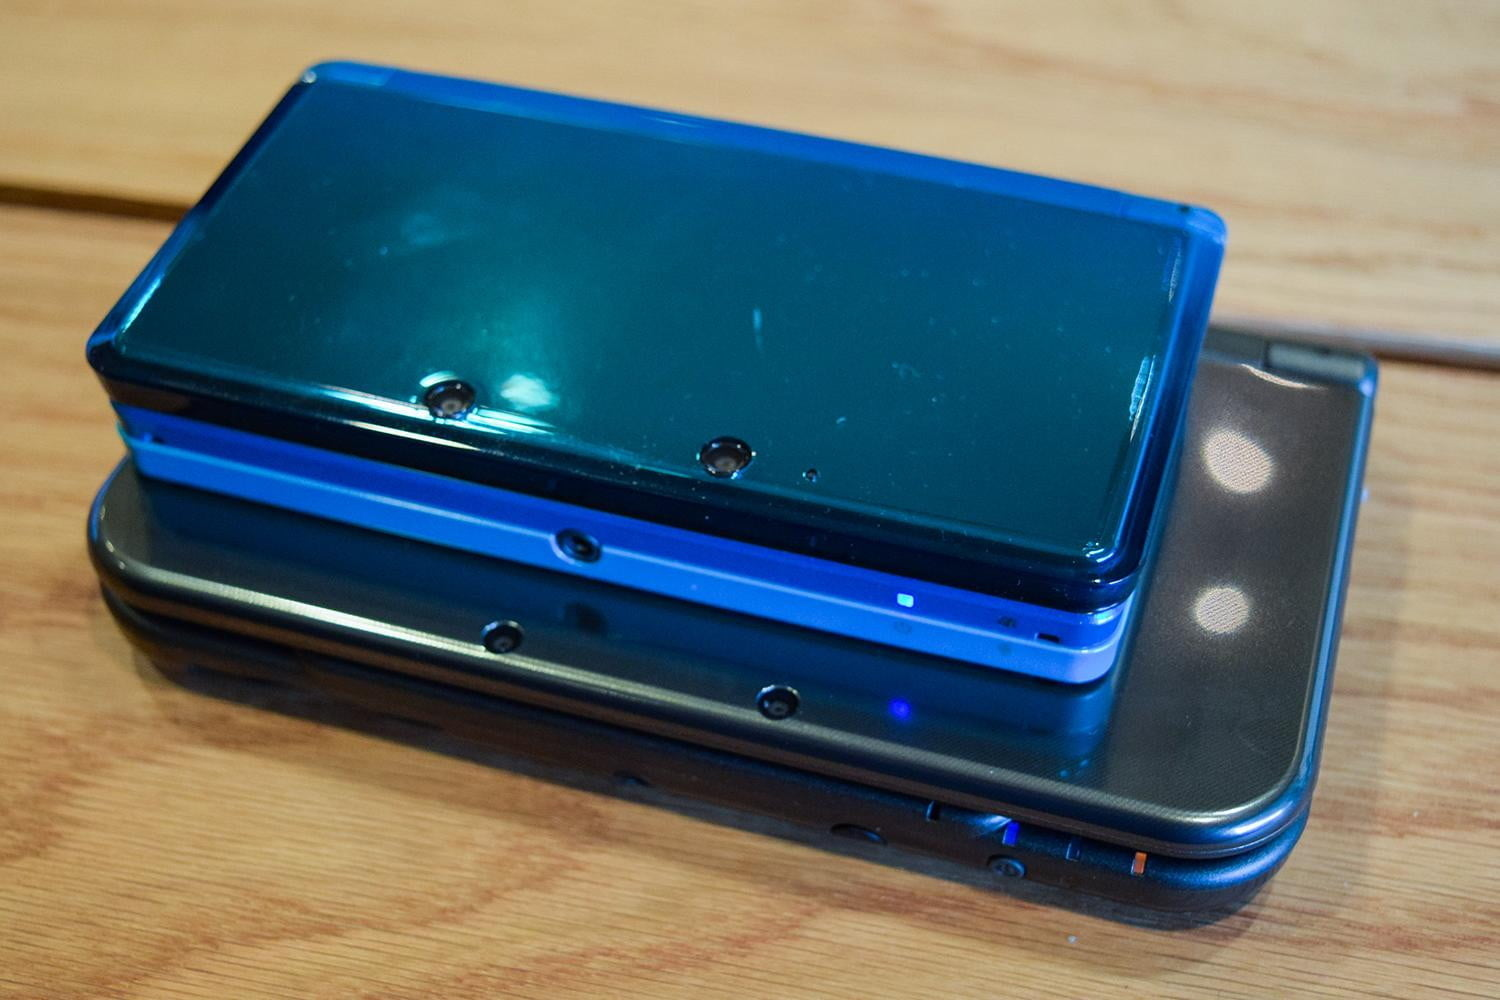 The Most Common Nintendo 3DS Problems and How to Fix Them | Digital